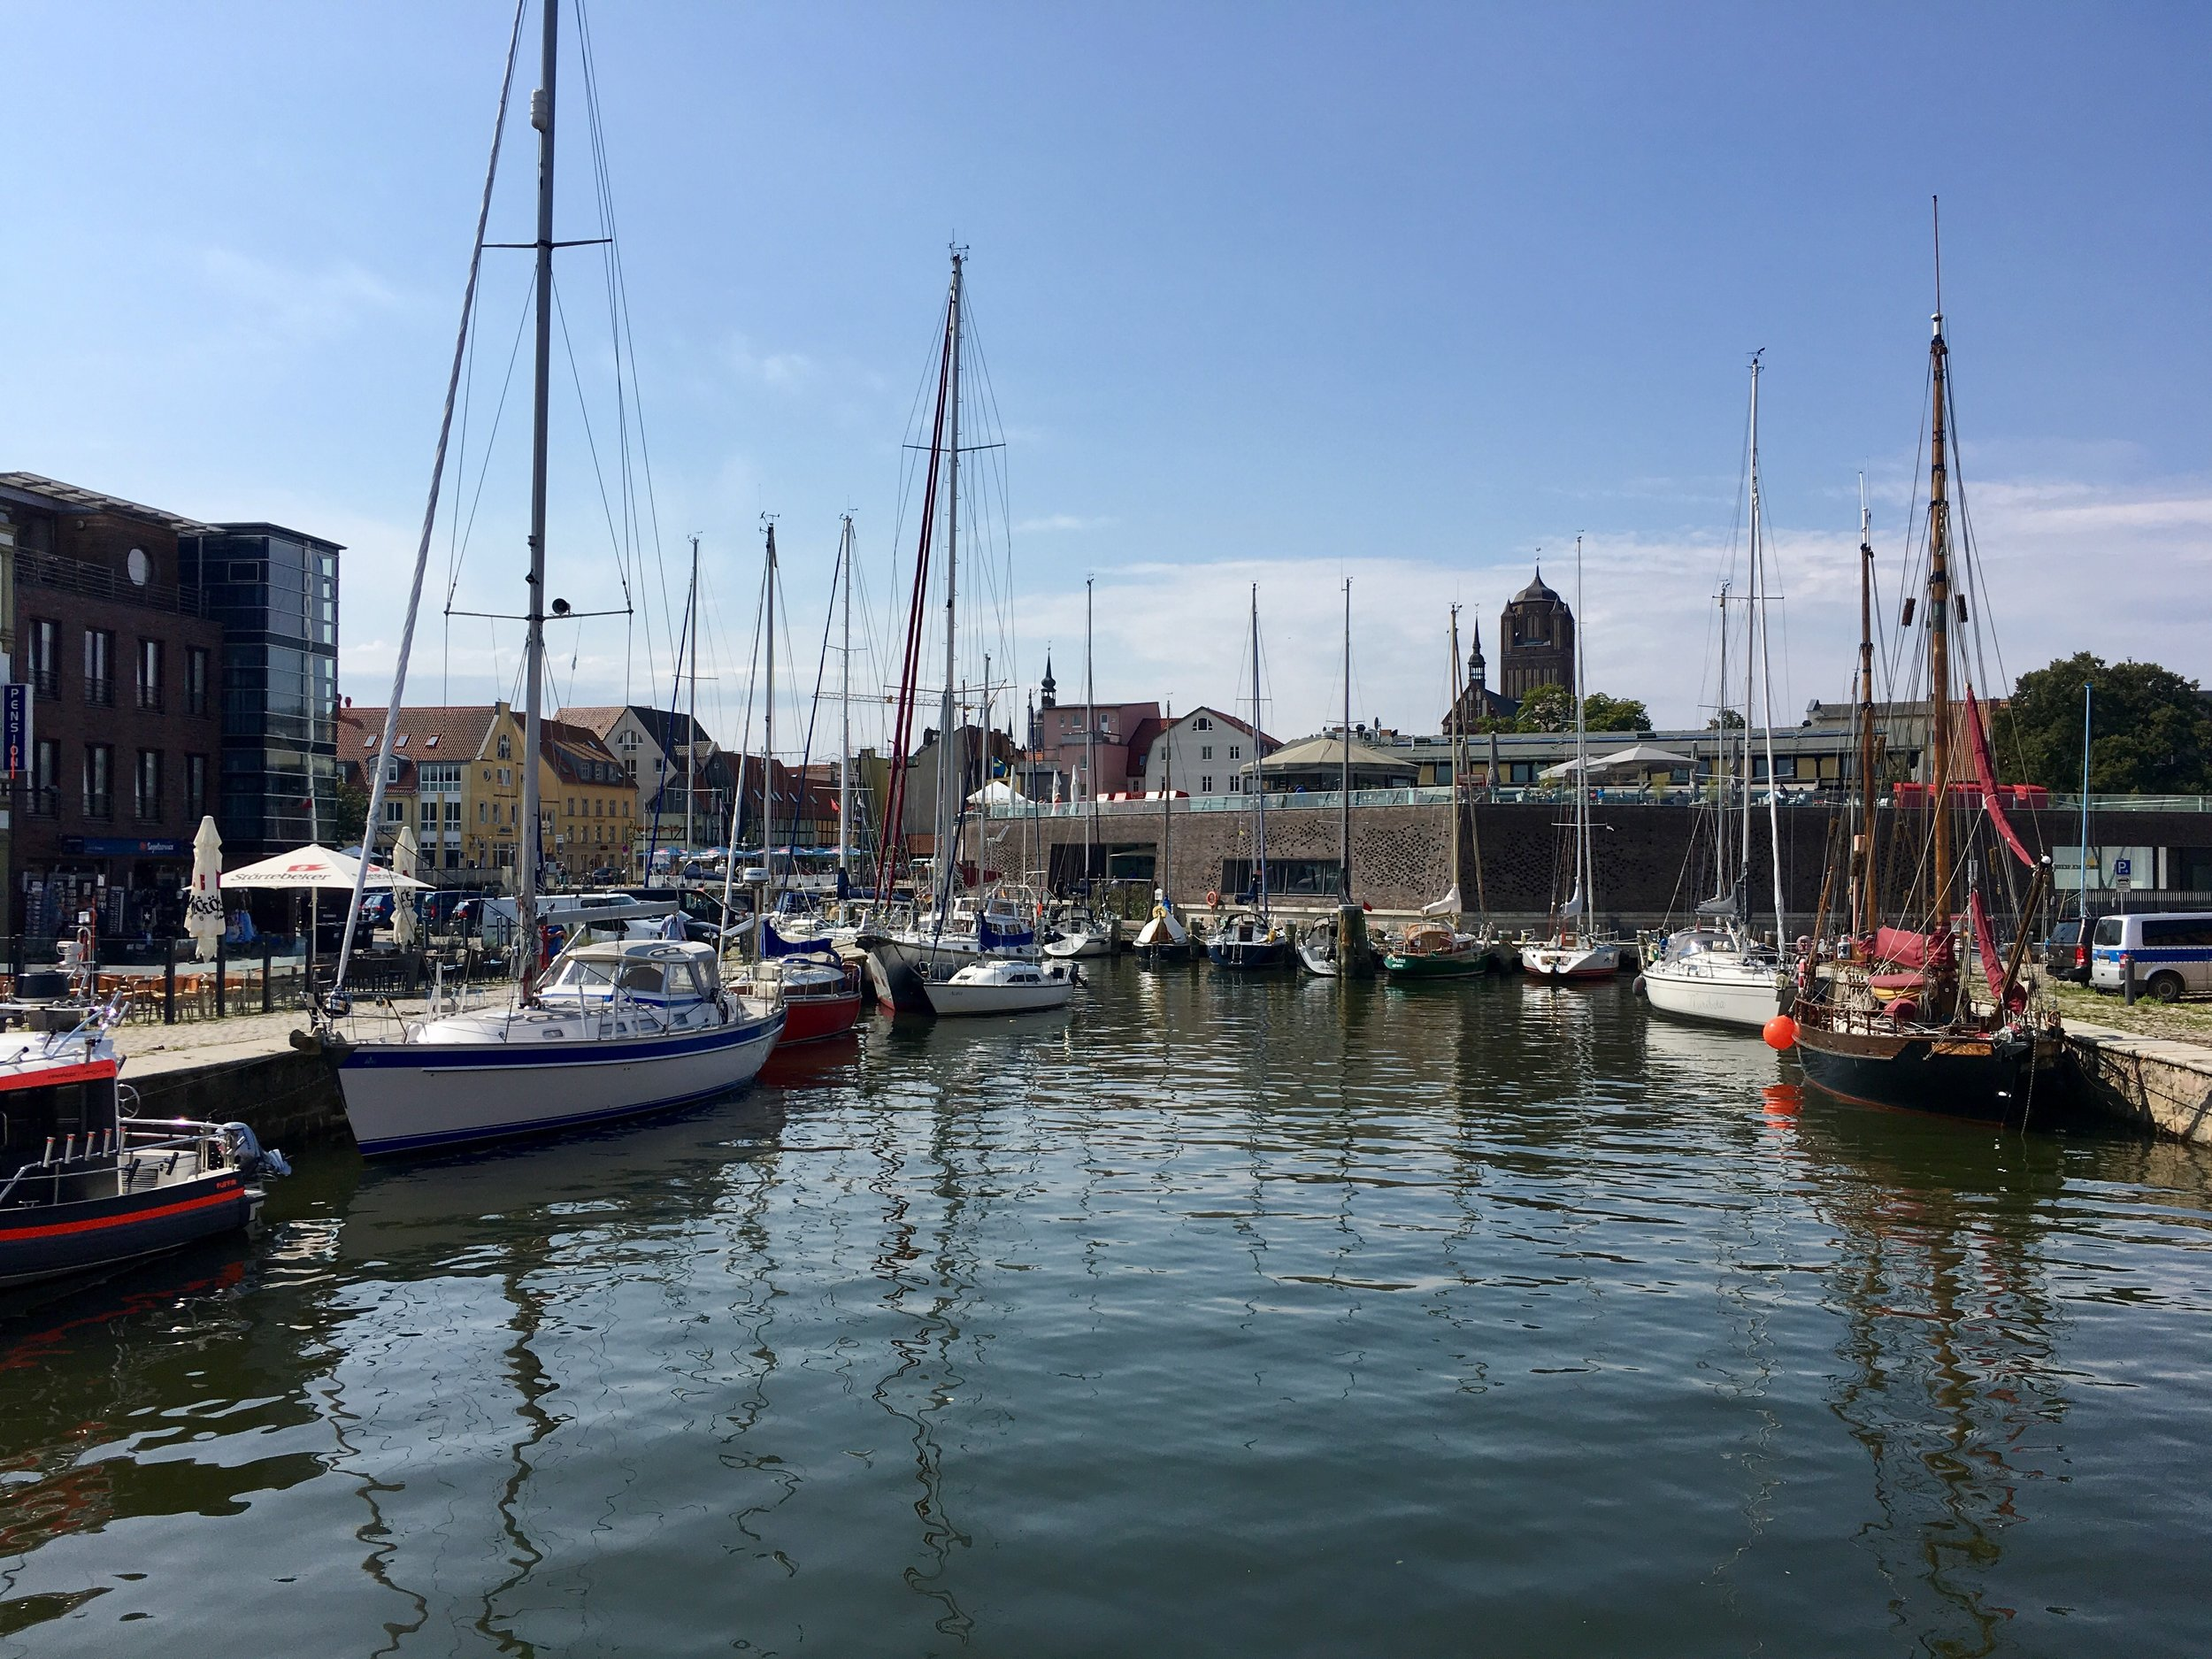 Stralsund, Germany - BALTIC SEA - GERMANYCLICK HERE